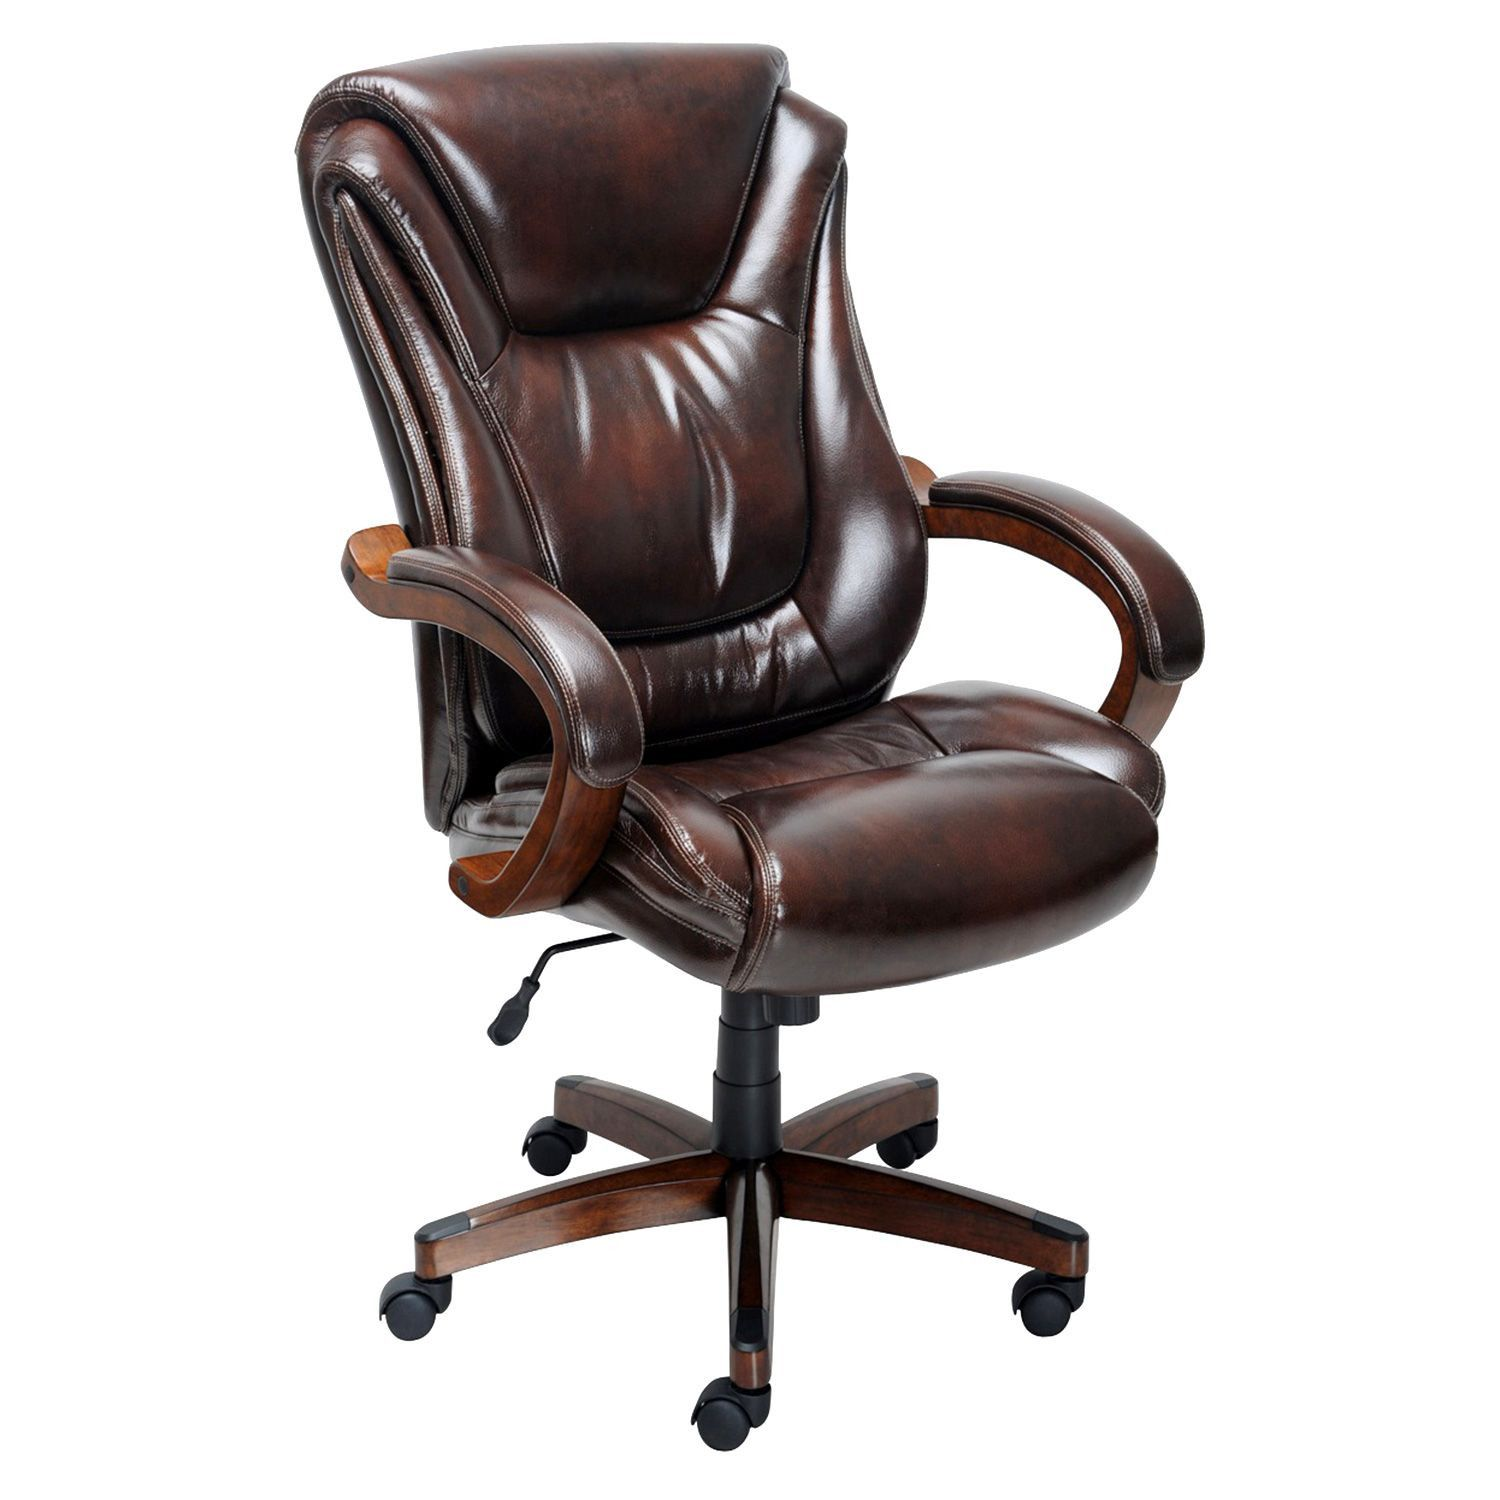 77 Lane And Tall Executive Chair